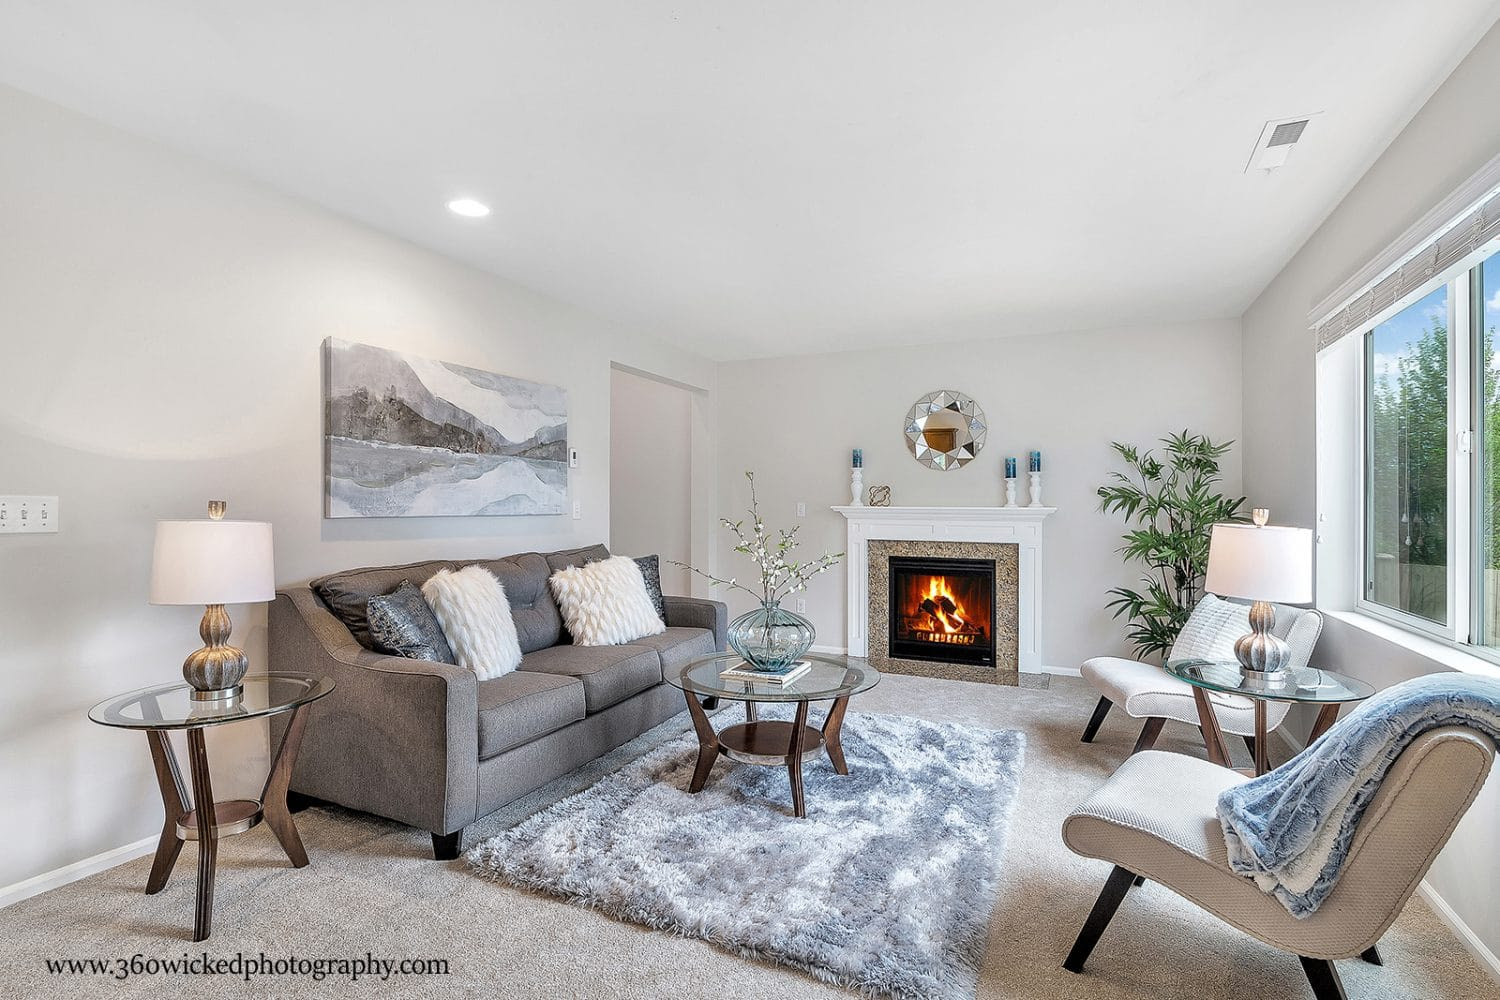 Fireplace with Couch